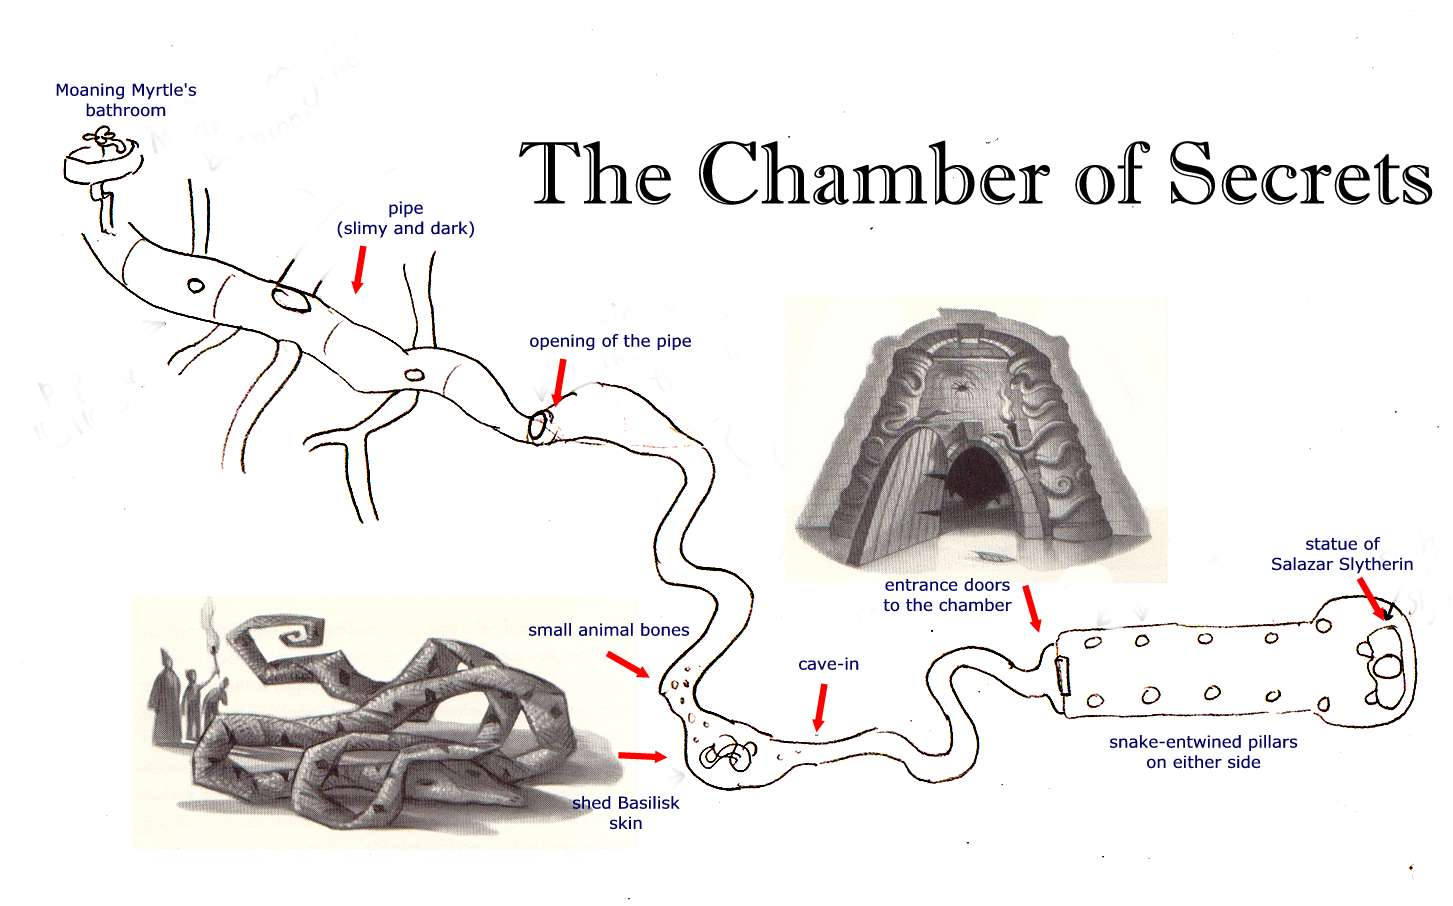 HPL: Map of the Chamber of Secrets